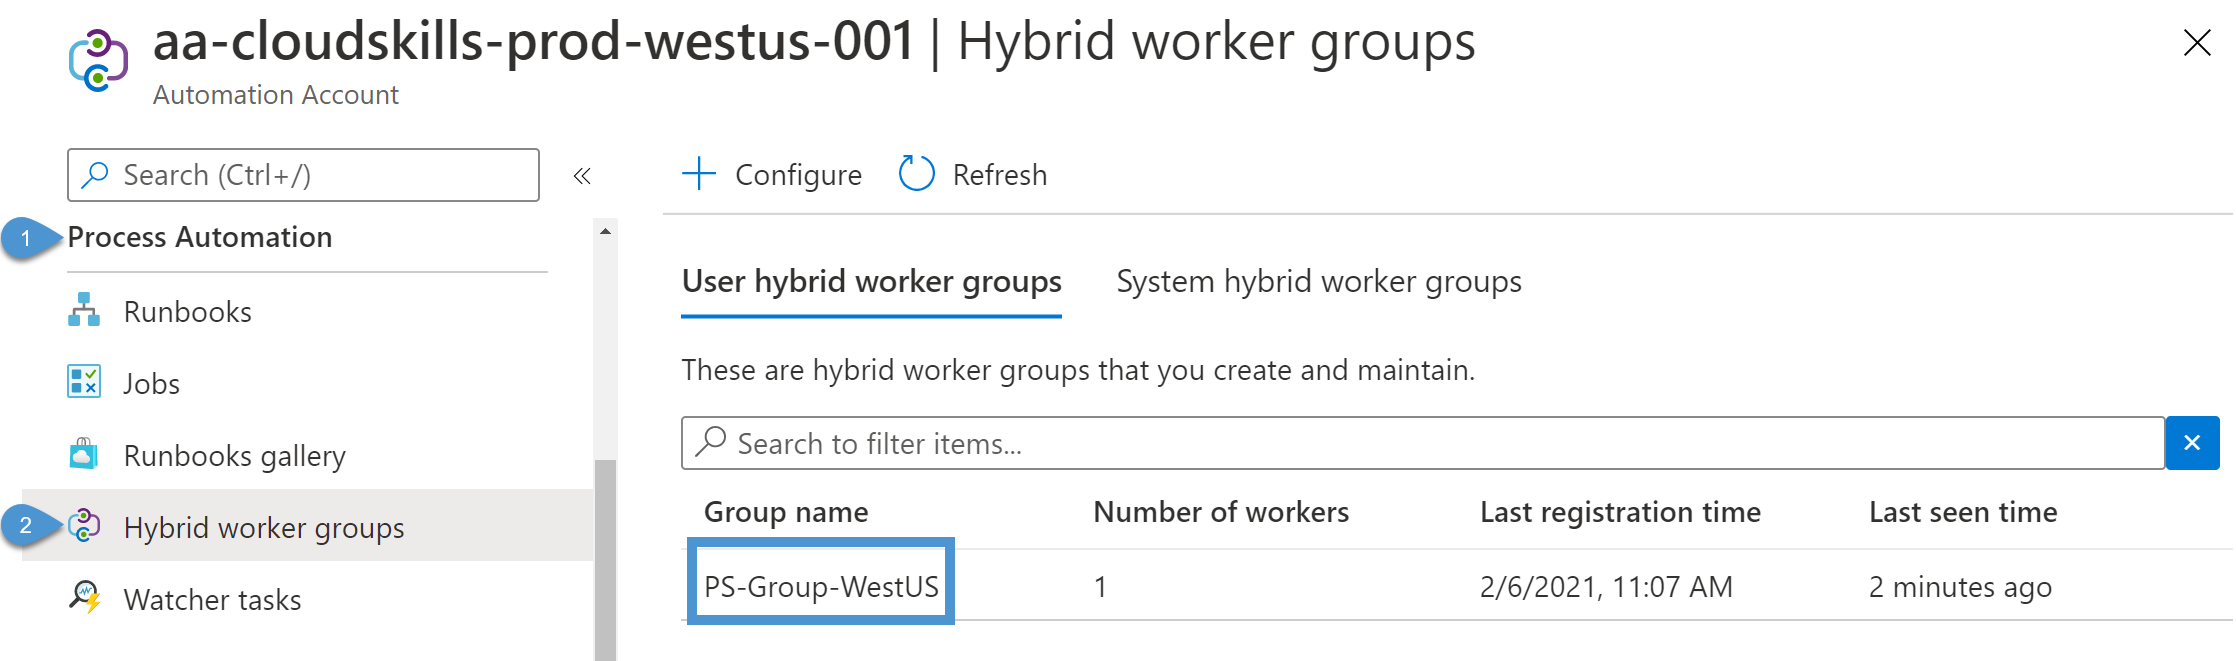 Viewing hybrid worker groups